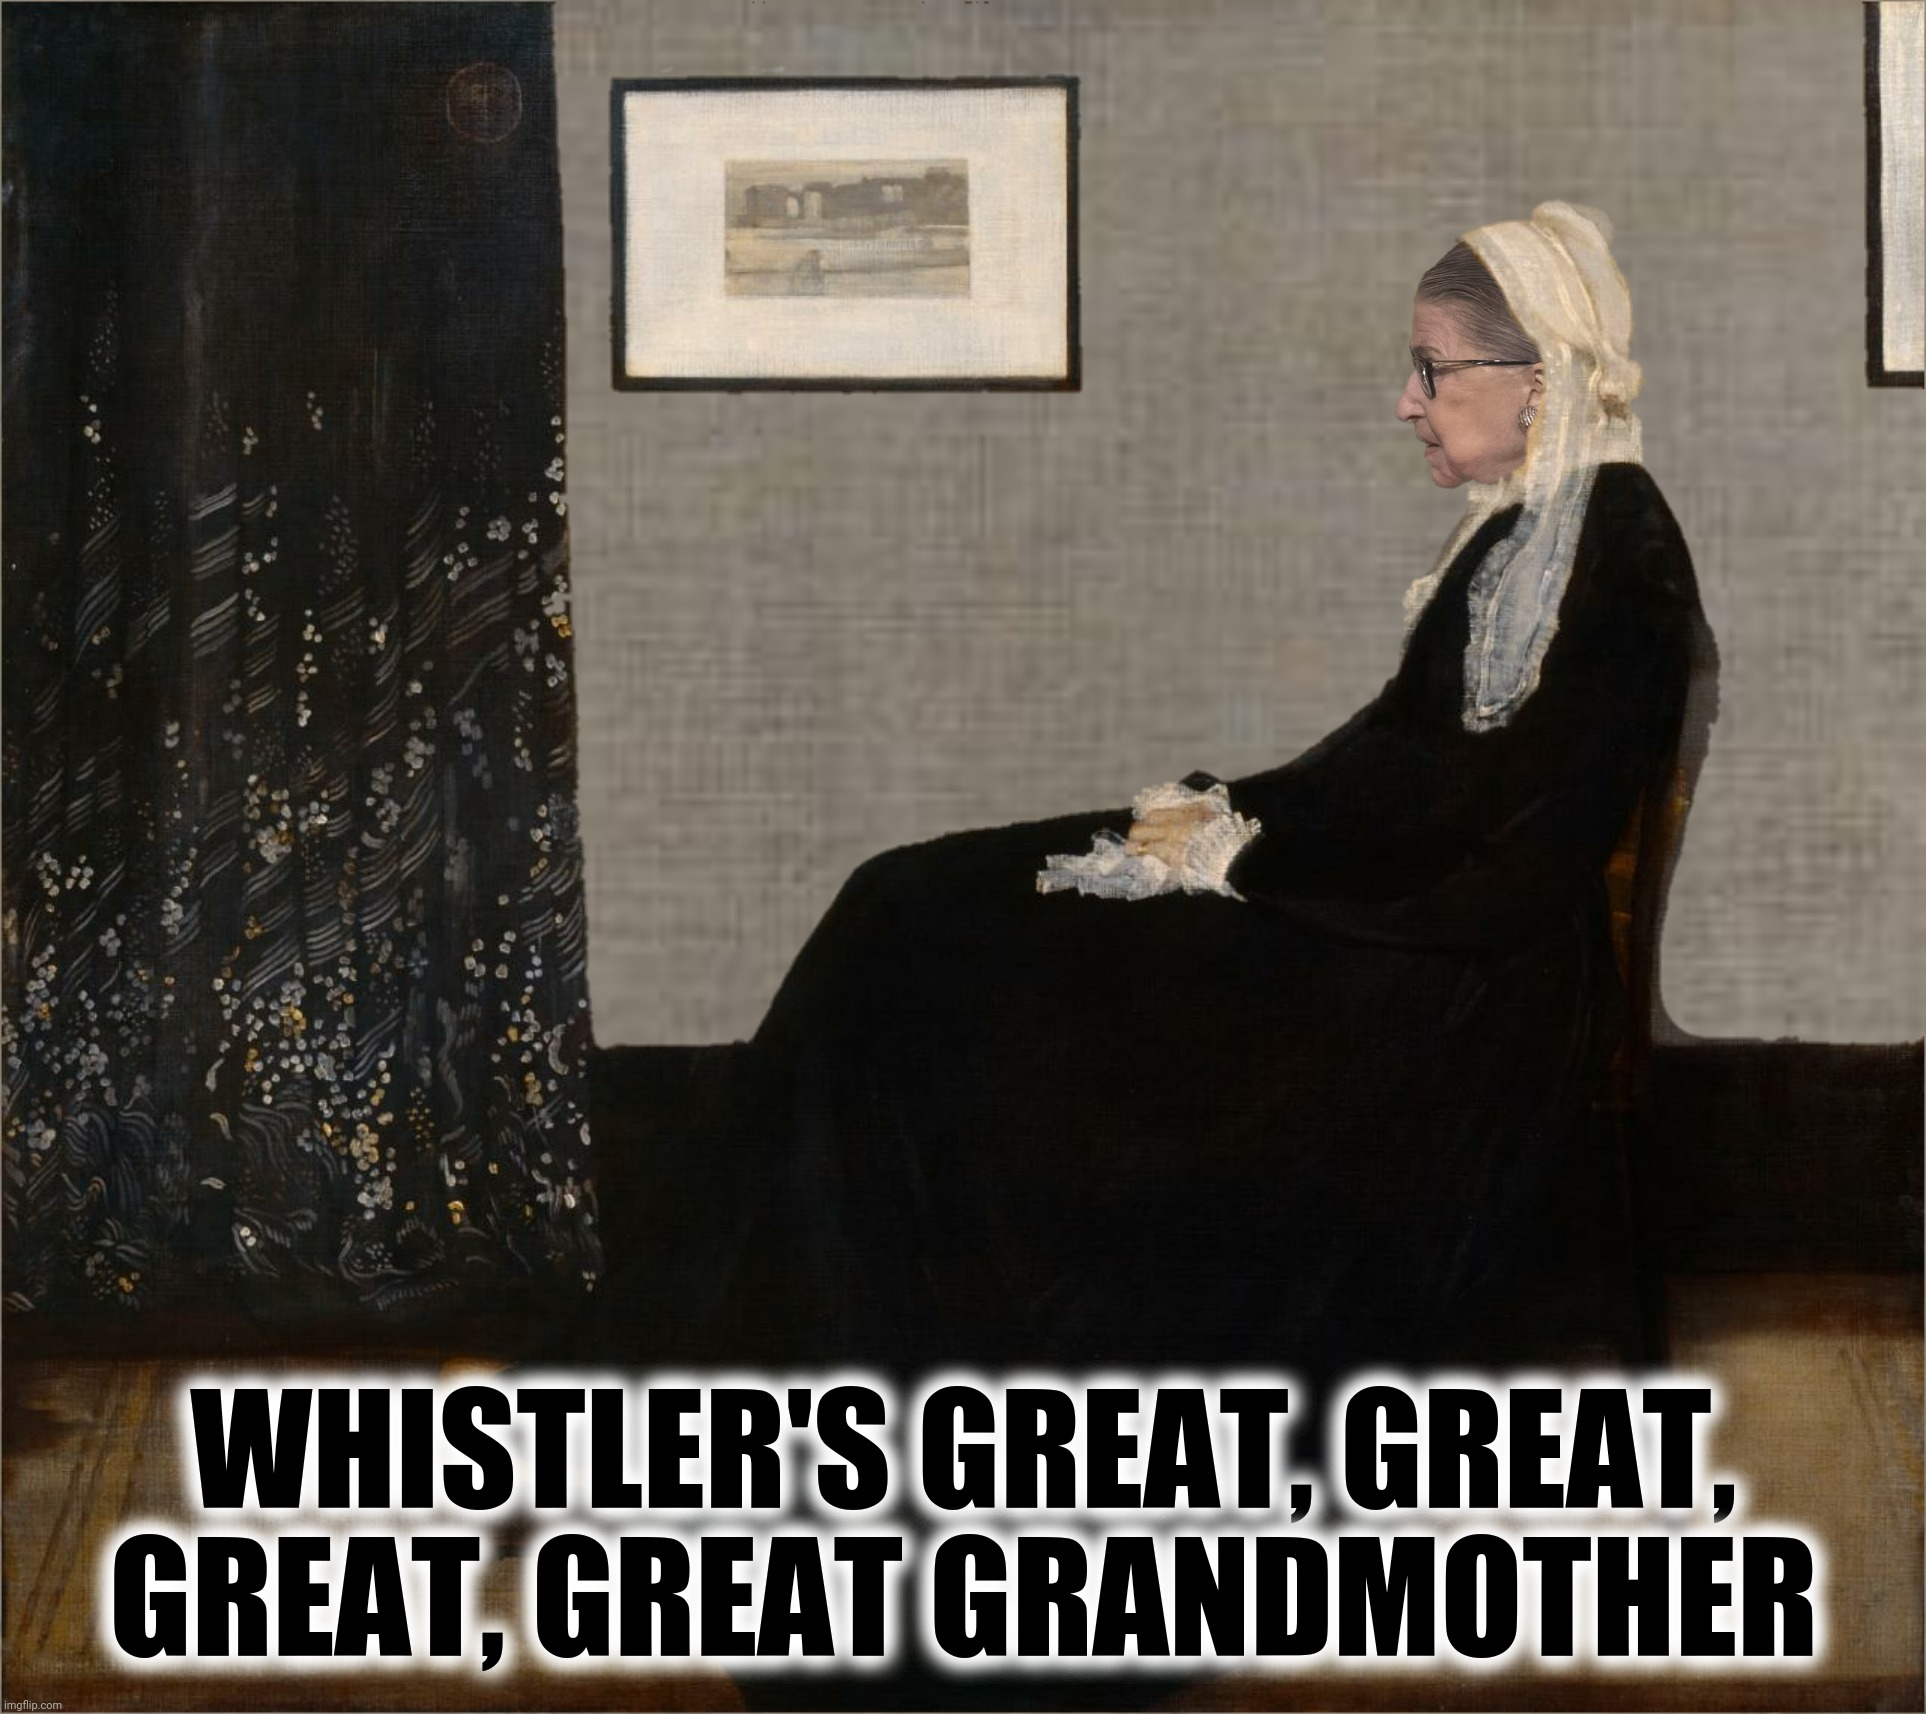 Bad Photoshop Sunday presents:  Not so great works of art |  WHISTLER'S GREAT, GREAT, GREAT, GREAT GRANDMOTHER | image tagged in bad photoshop sunday,ruth bader ginsburg,whistler's mother,art | made w/ Imgflip meme maker